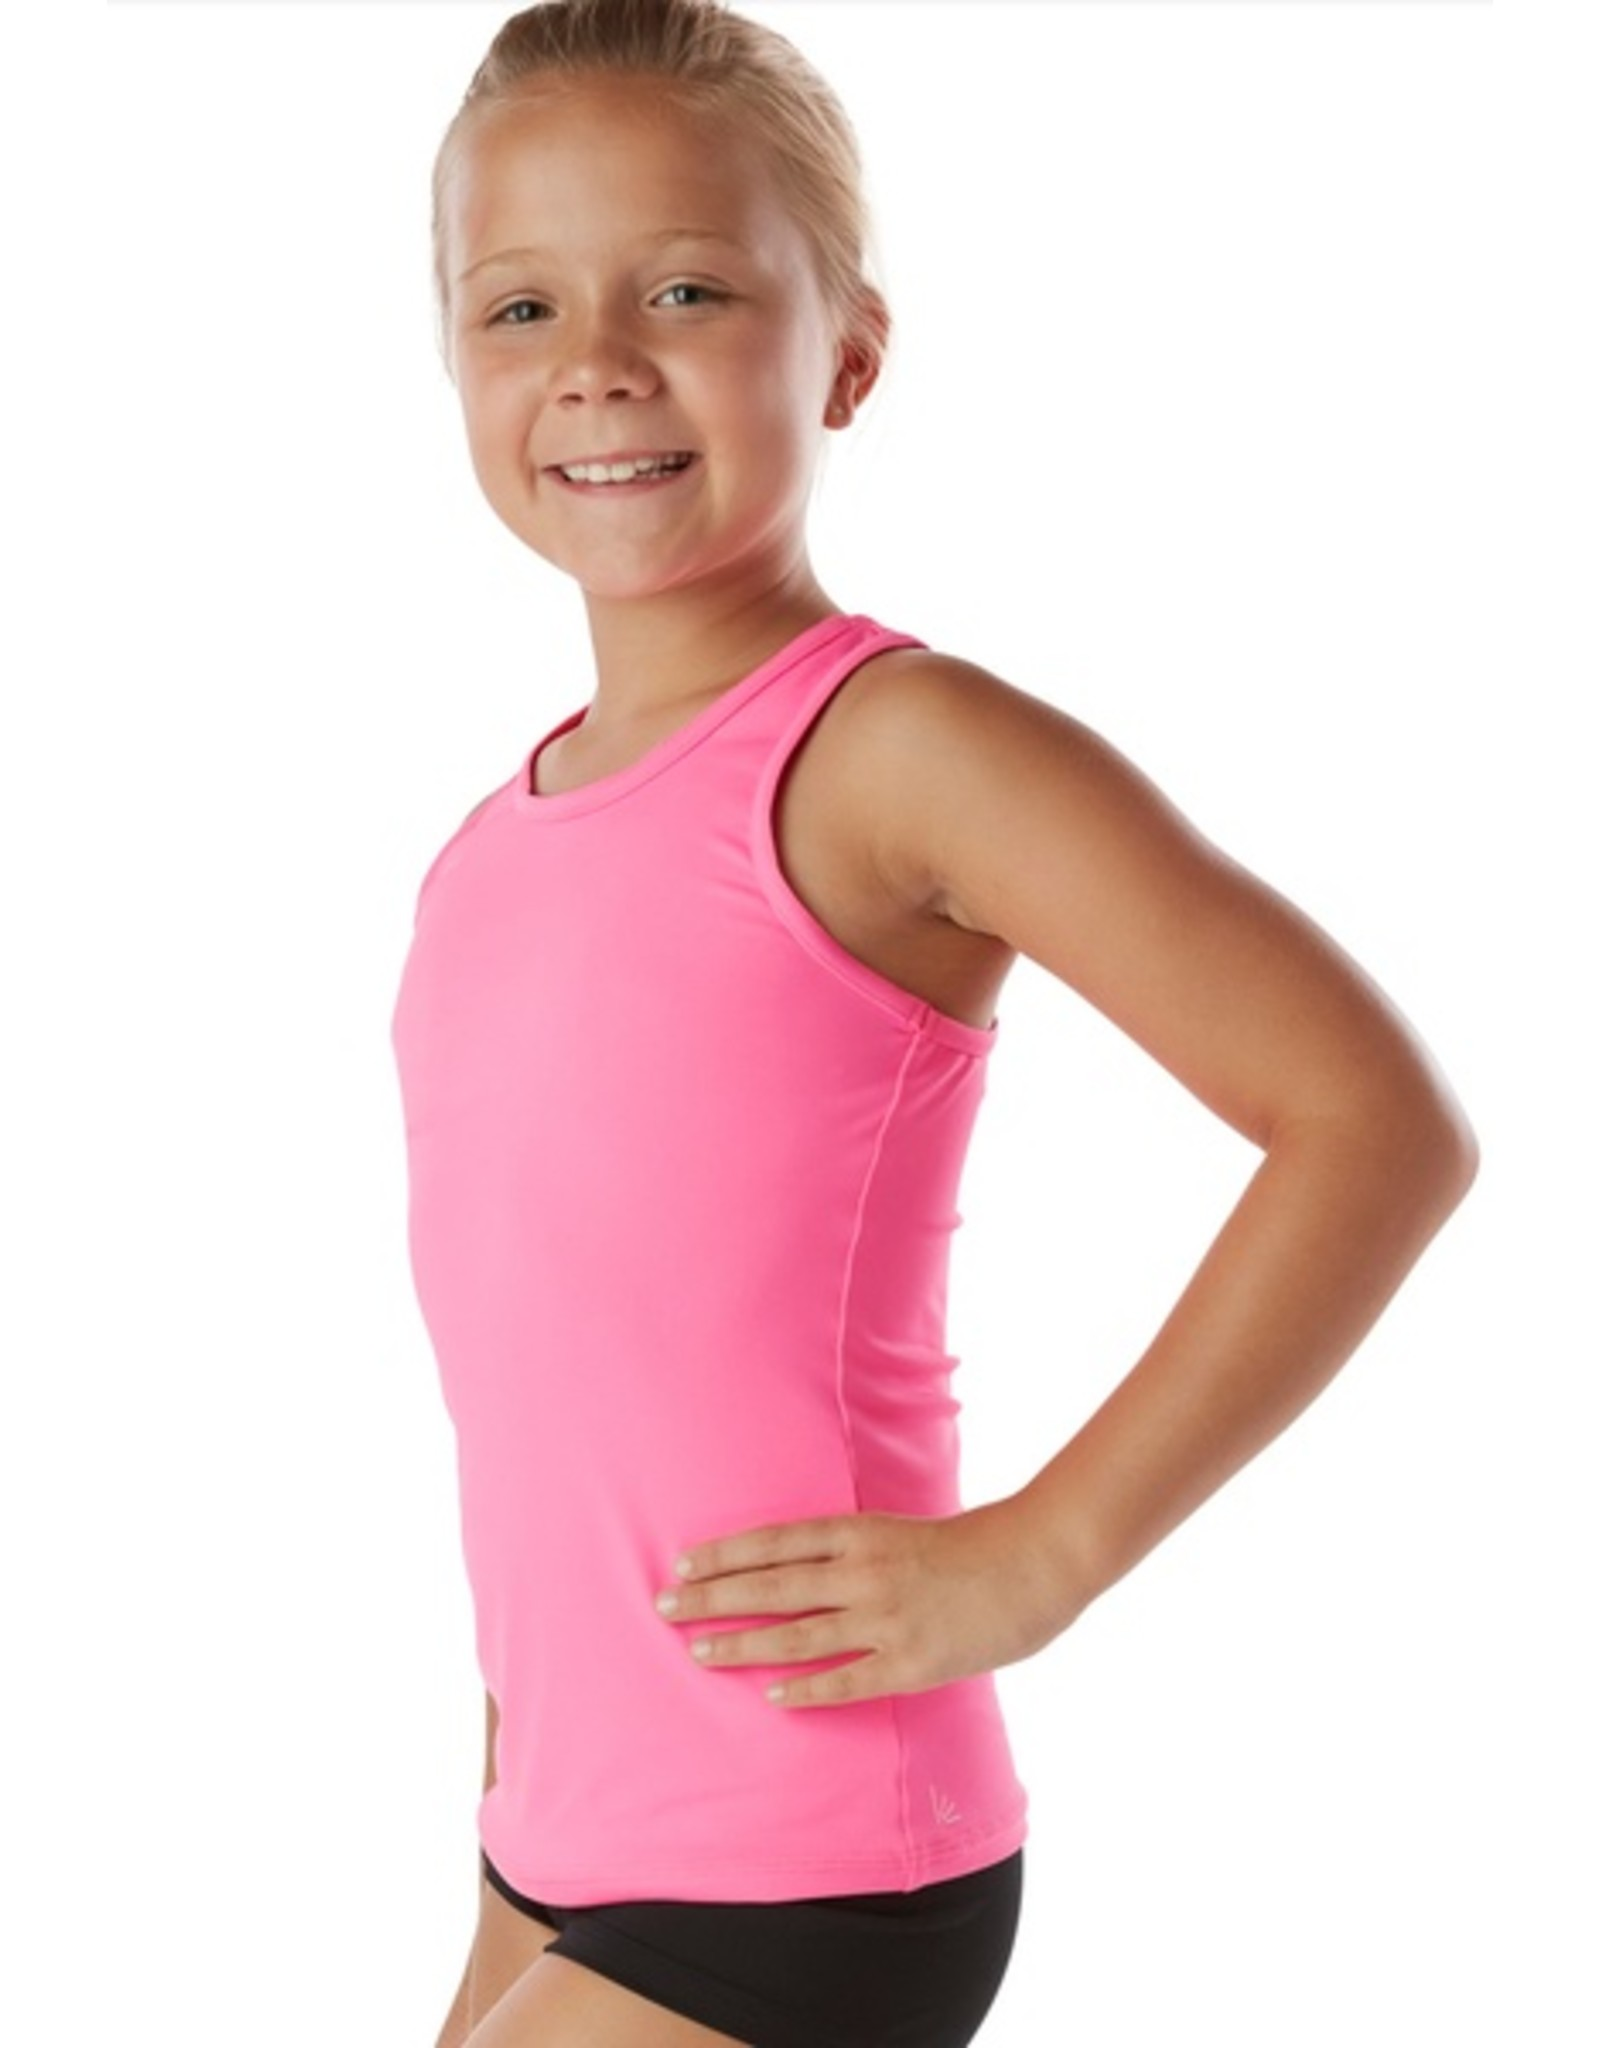 Youth Basic Tank Top